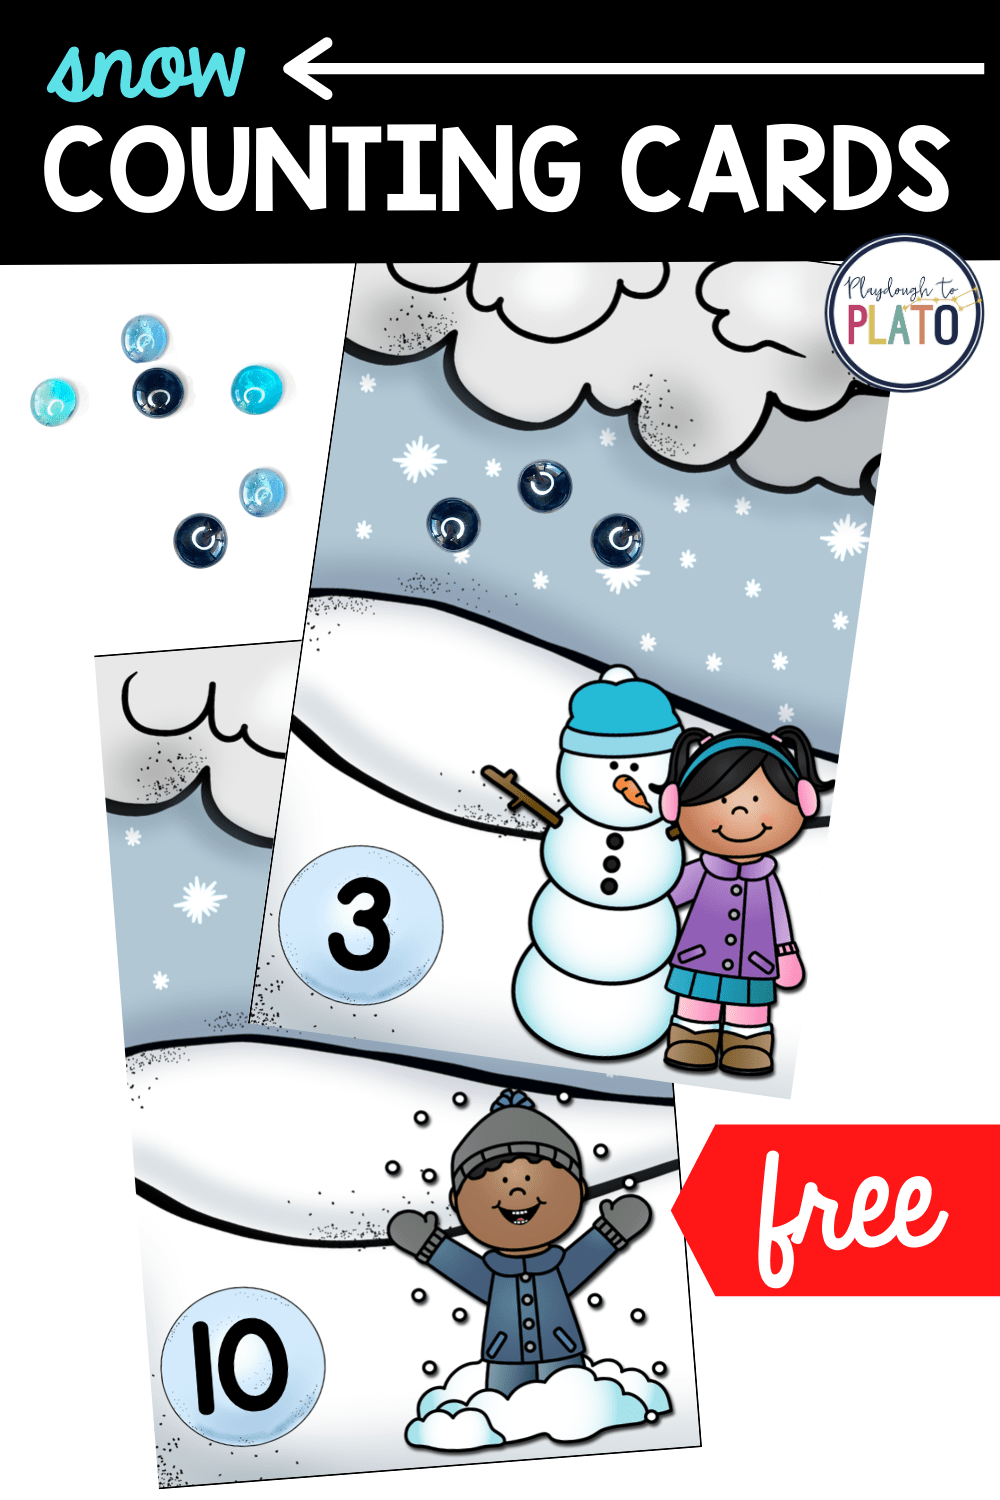 Snow Counting Cards